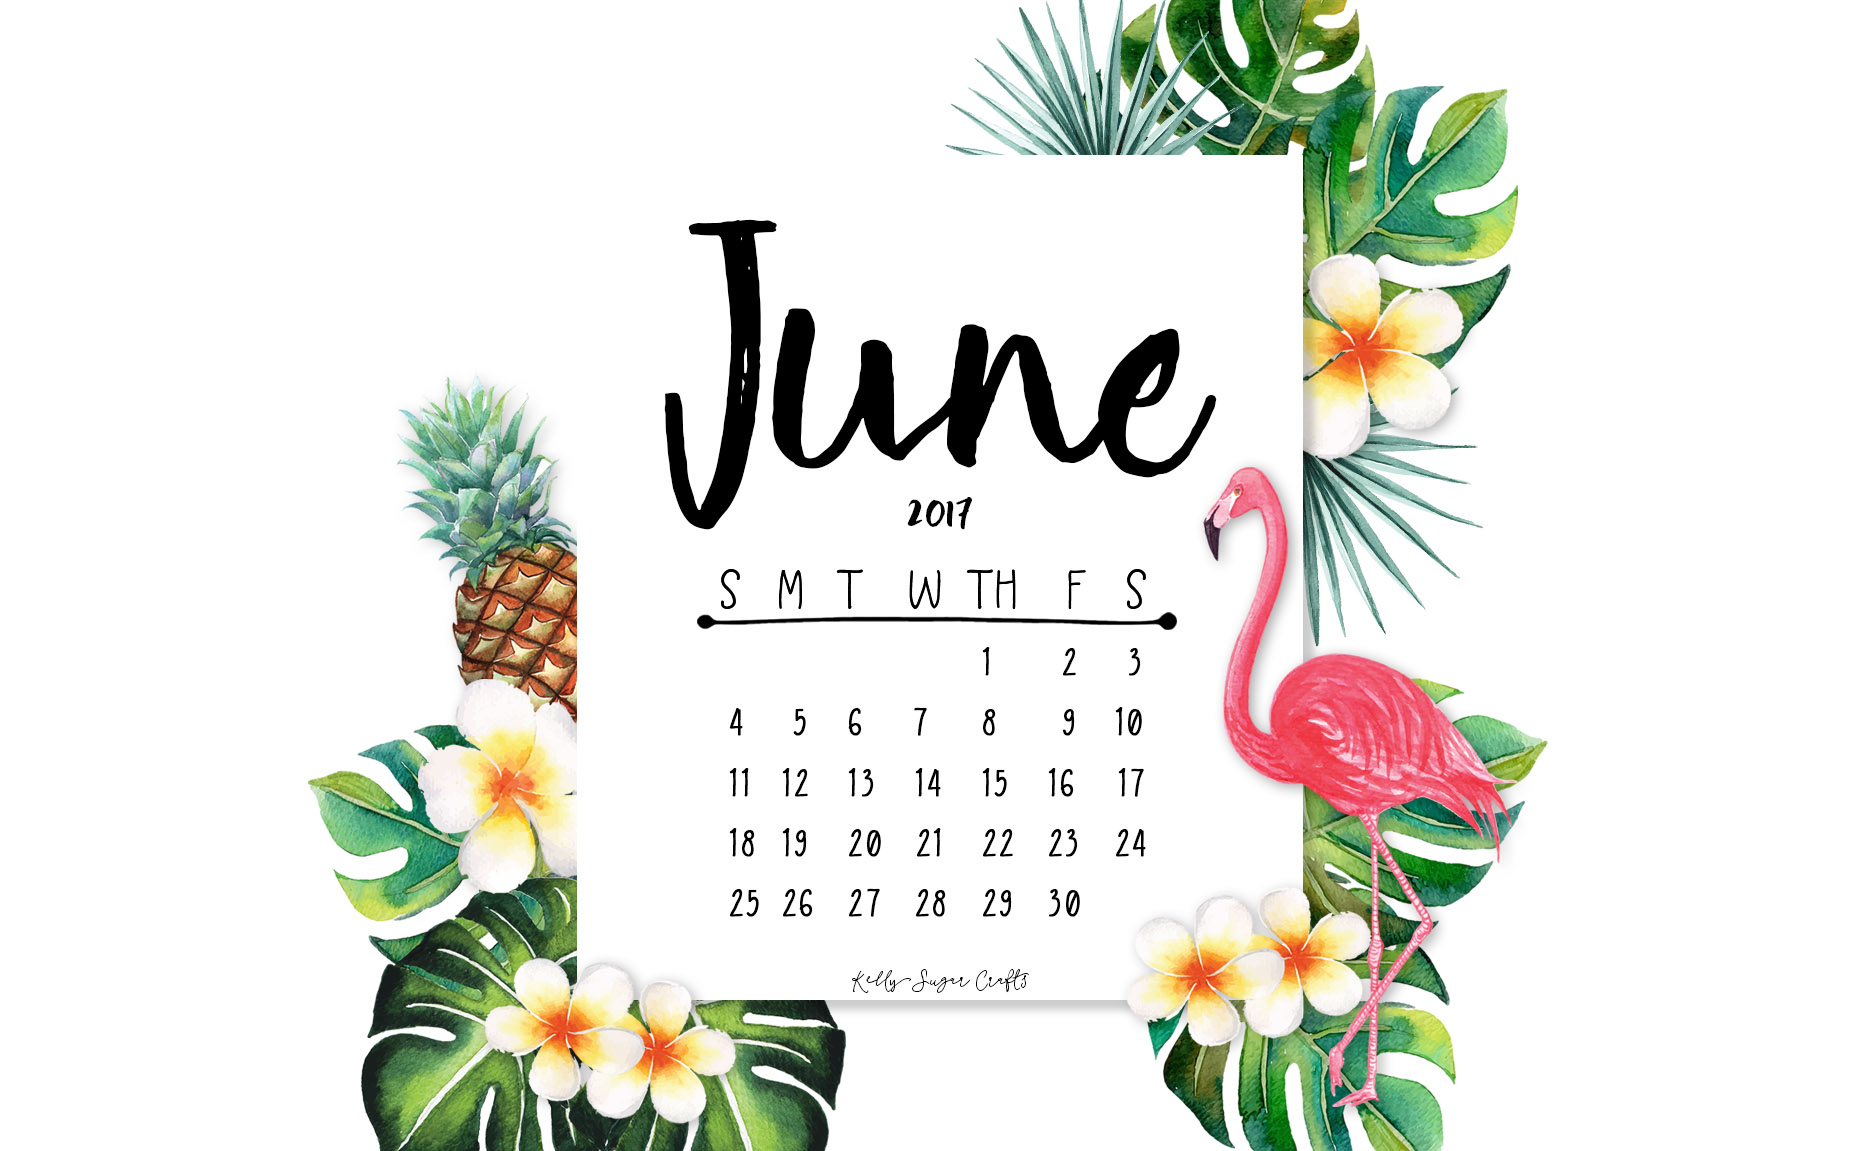 Example Domain June 2017 Printable Calendar Wallpapers Kelly Sugar Crafts